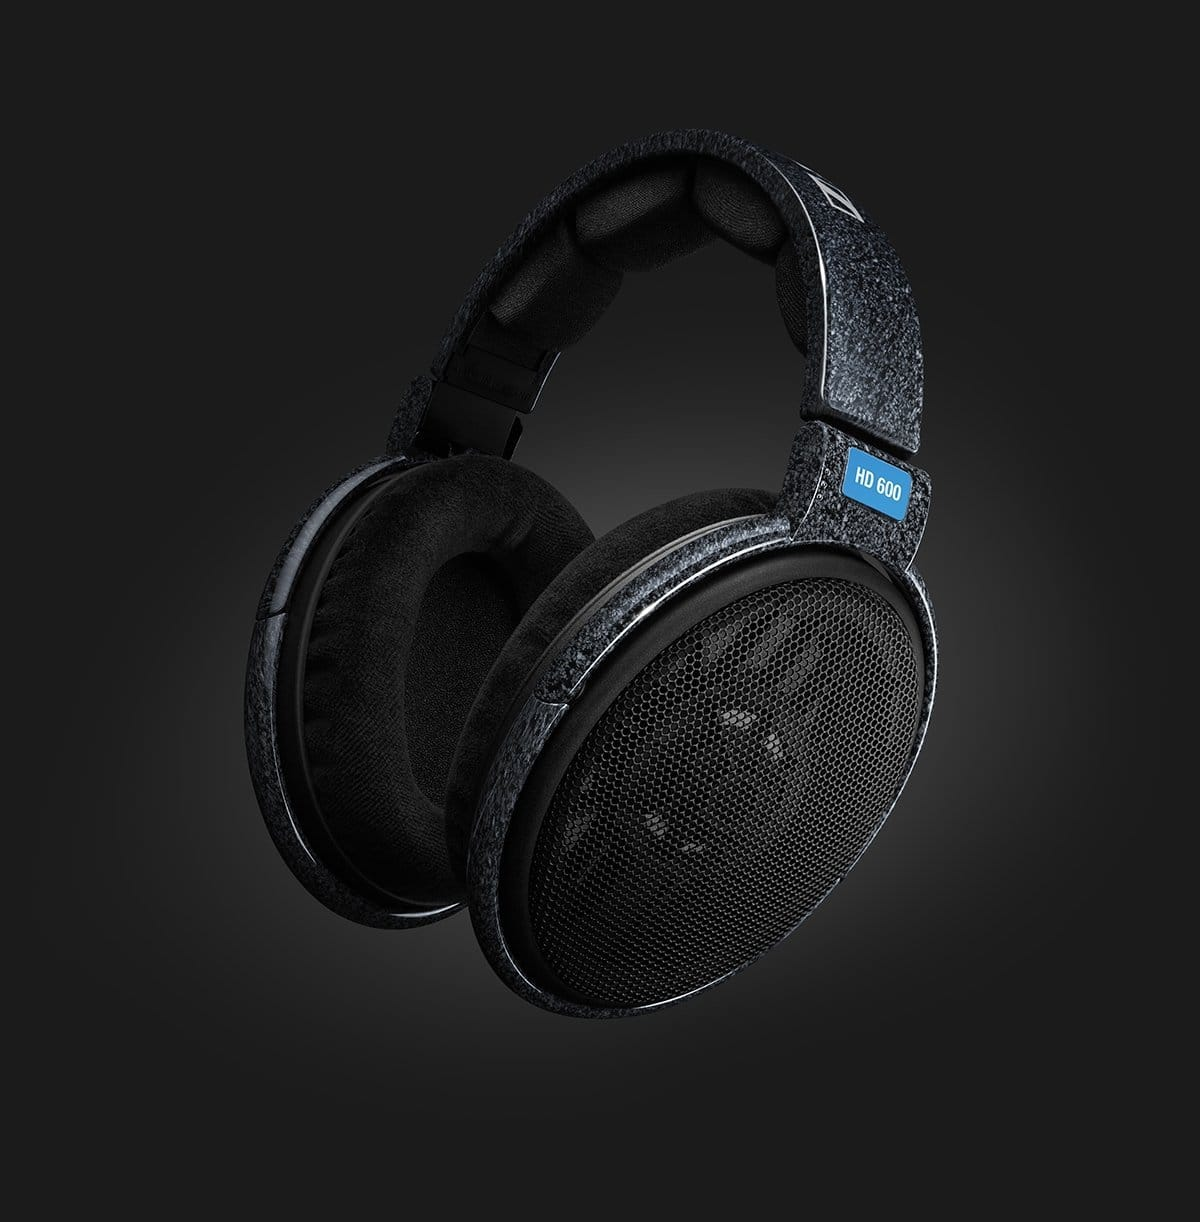 The famous Sennheiser HD 600 headphones are $22 cheaper than the all-time low in 2009 at Amazon for $229